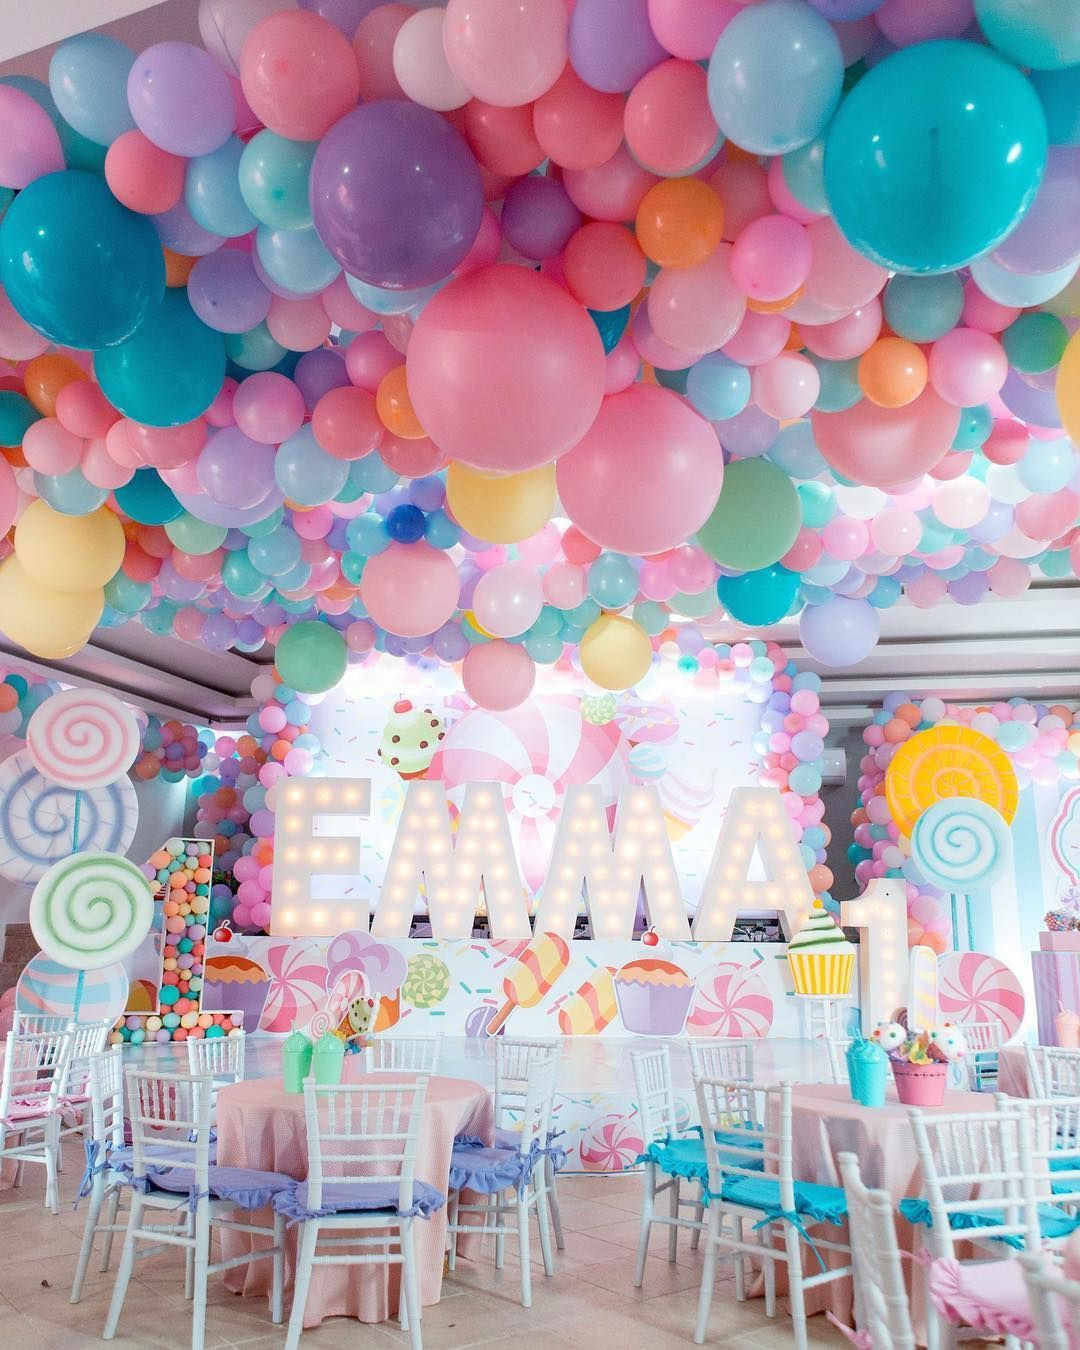 Decoration For A Candyland Party Source Bs Eventos Ecumple Partydecor Decor I In 2020 Candy Land Birthday Party Candyland Party Birthday Party Themes